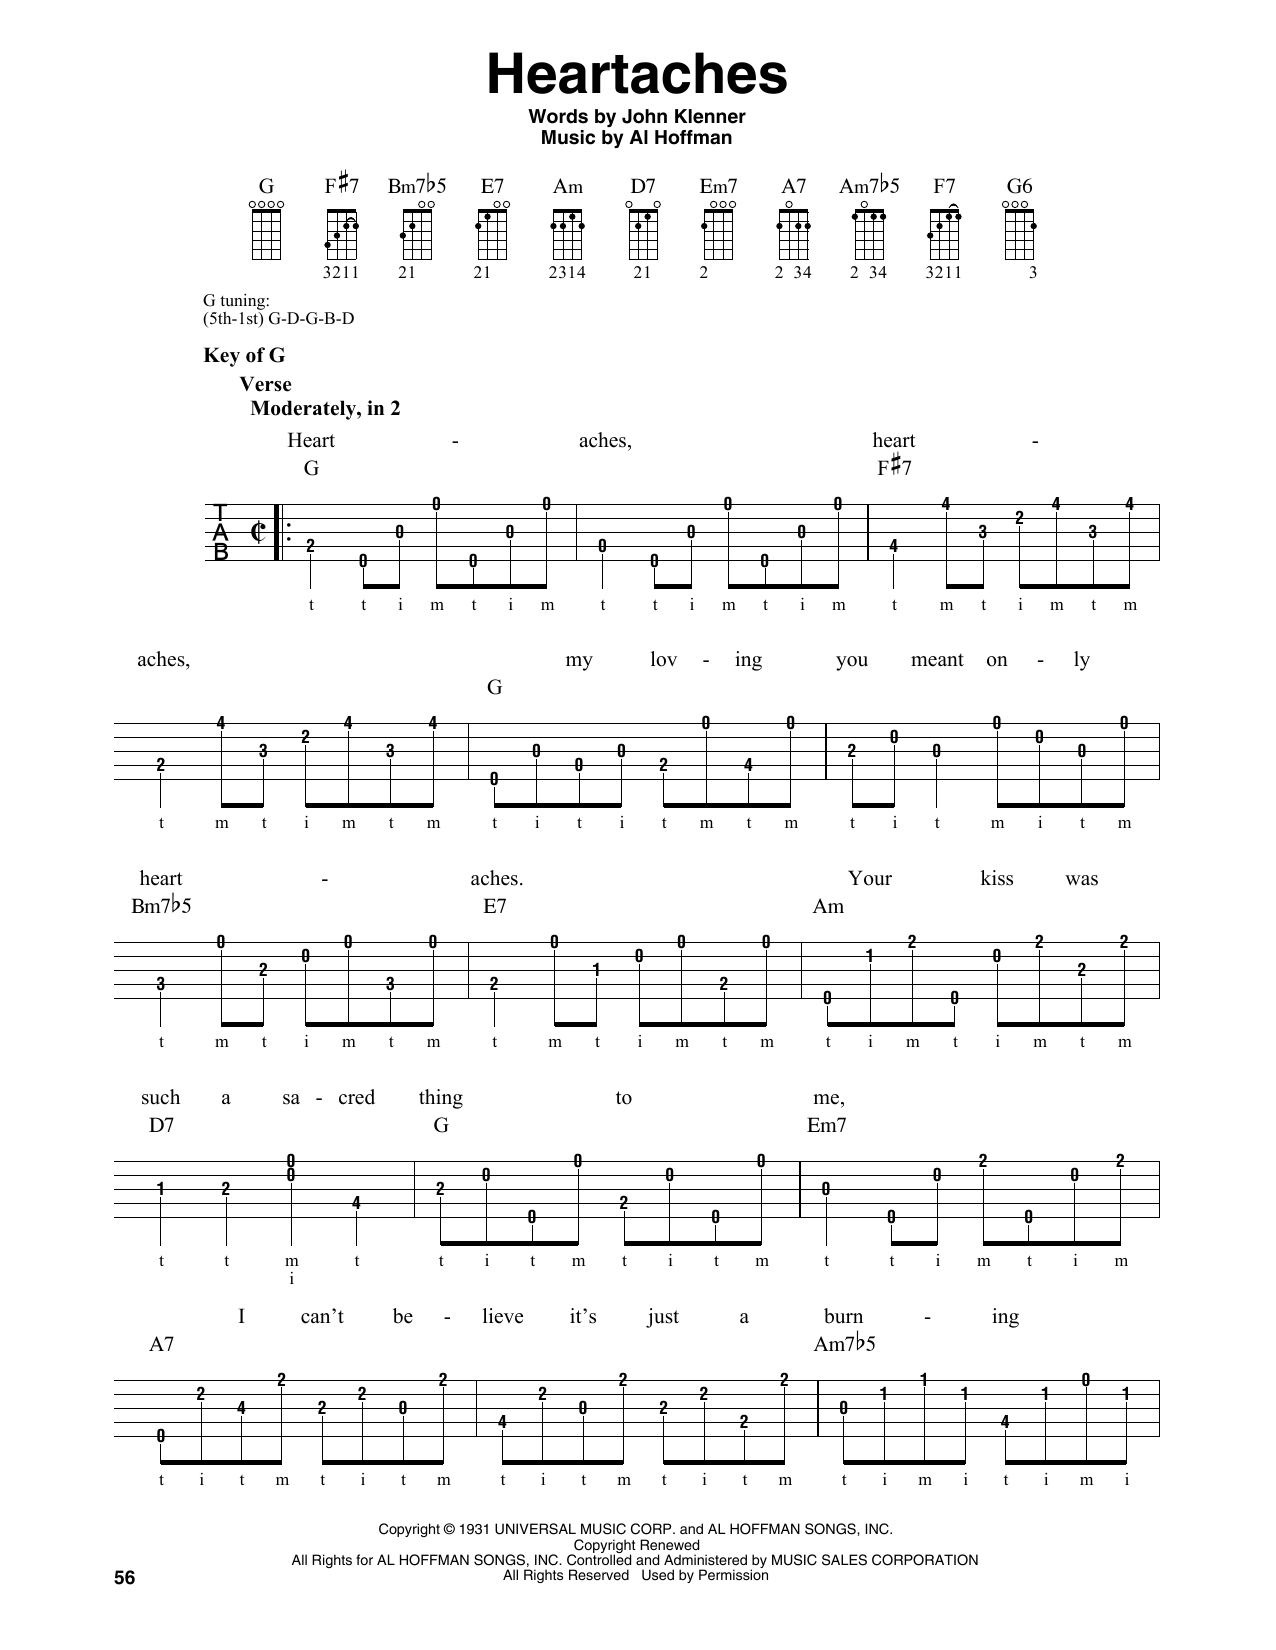 Al Hoffman Heartaches sheet music notes and chords. Download Printable PDF.